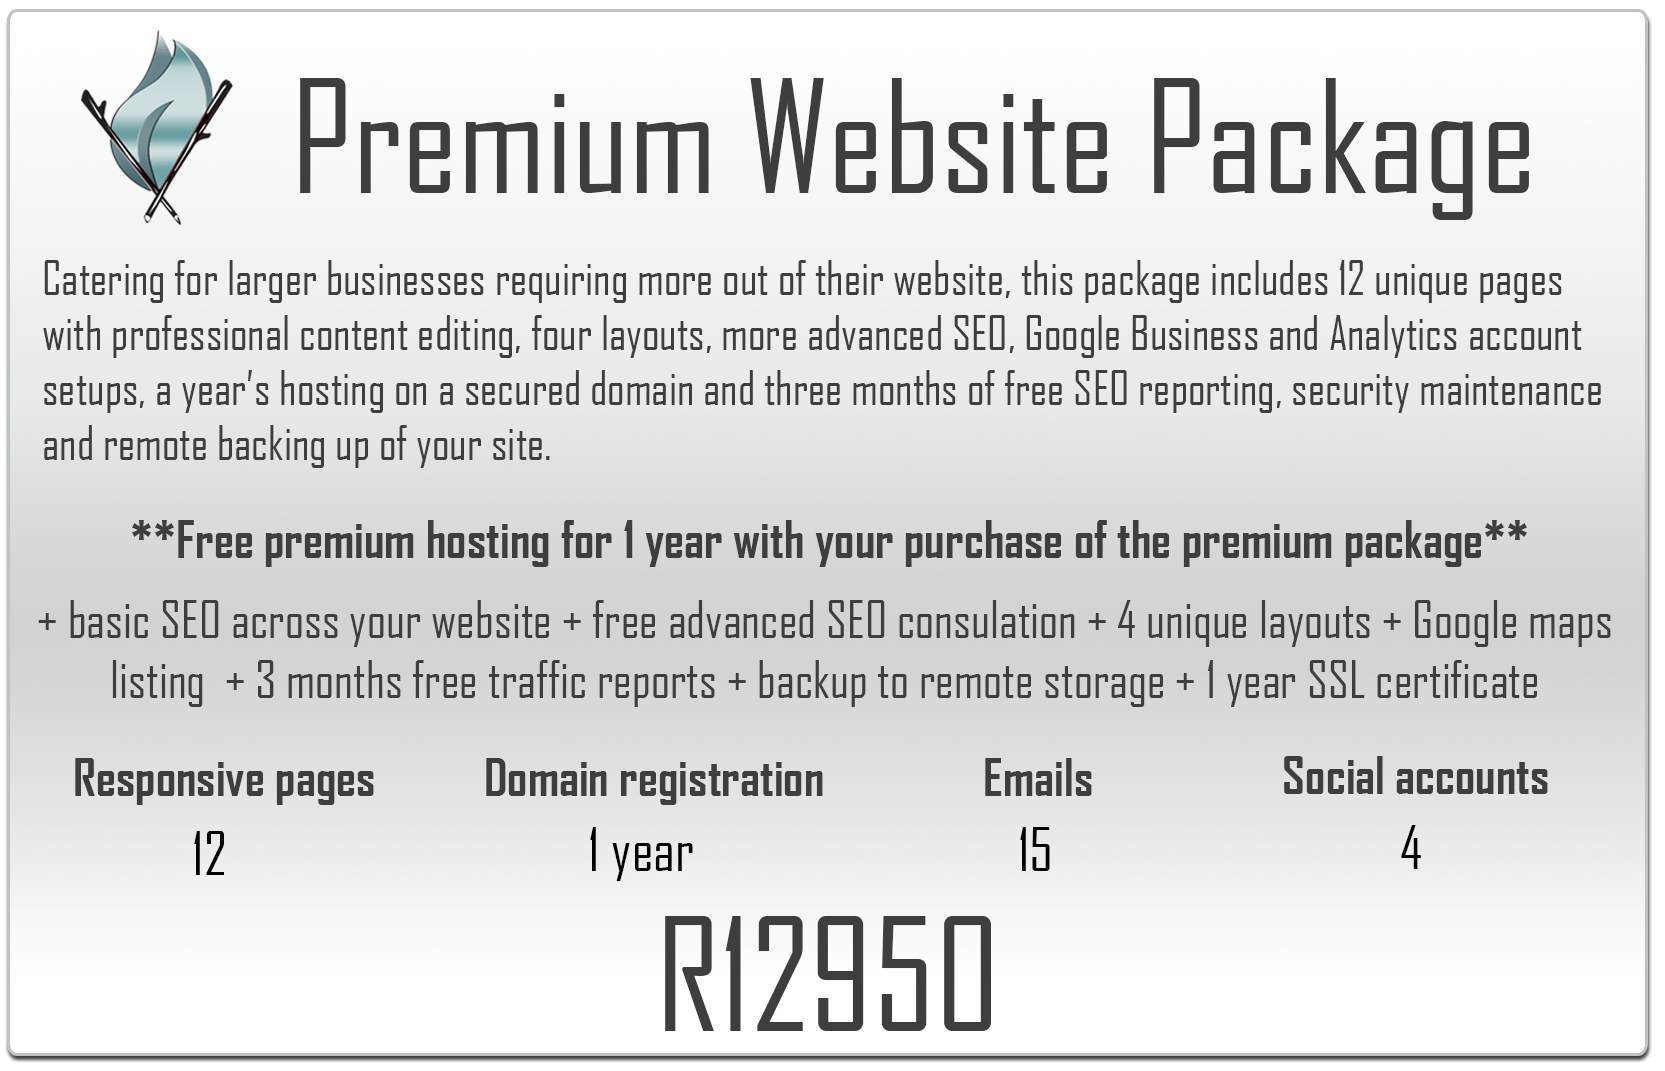 Premium website package